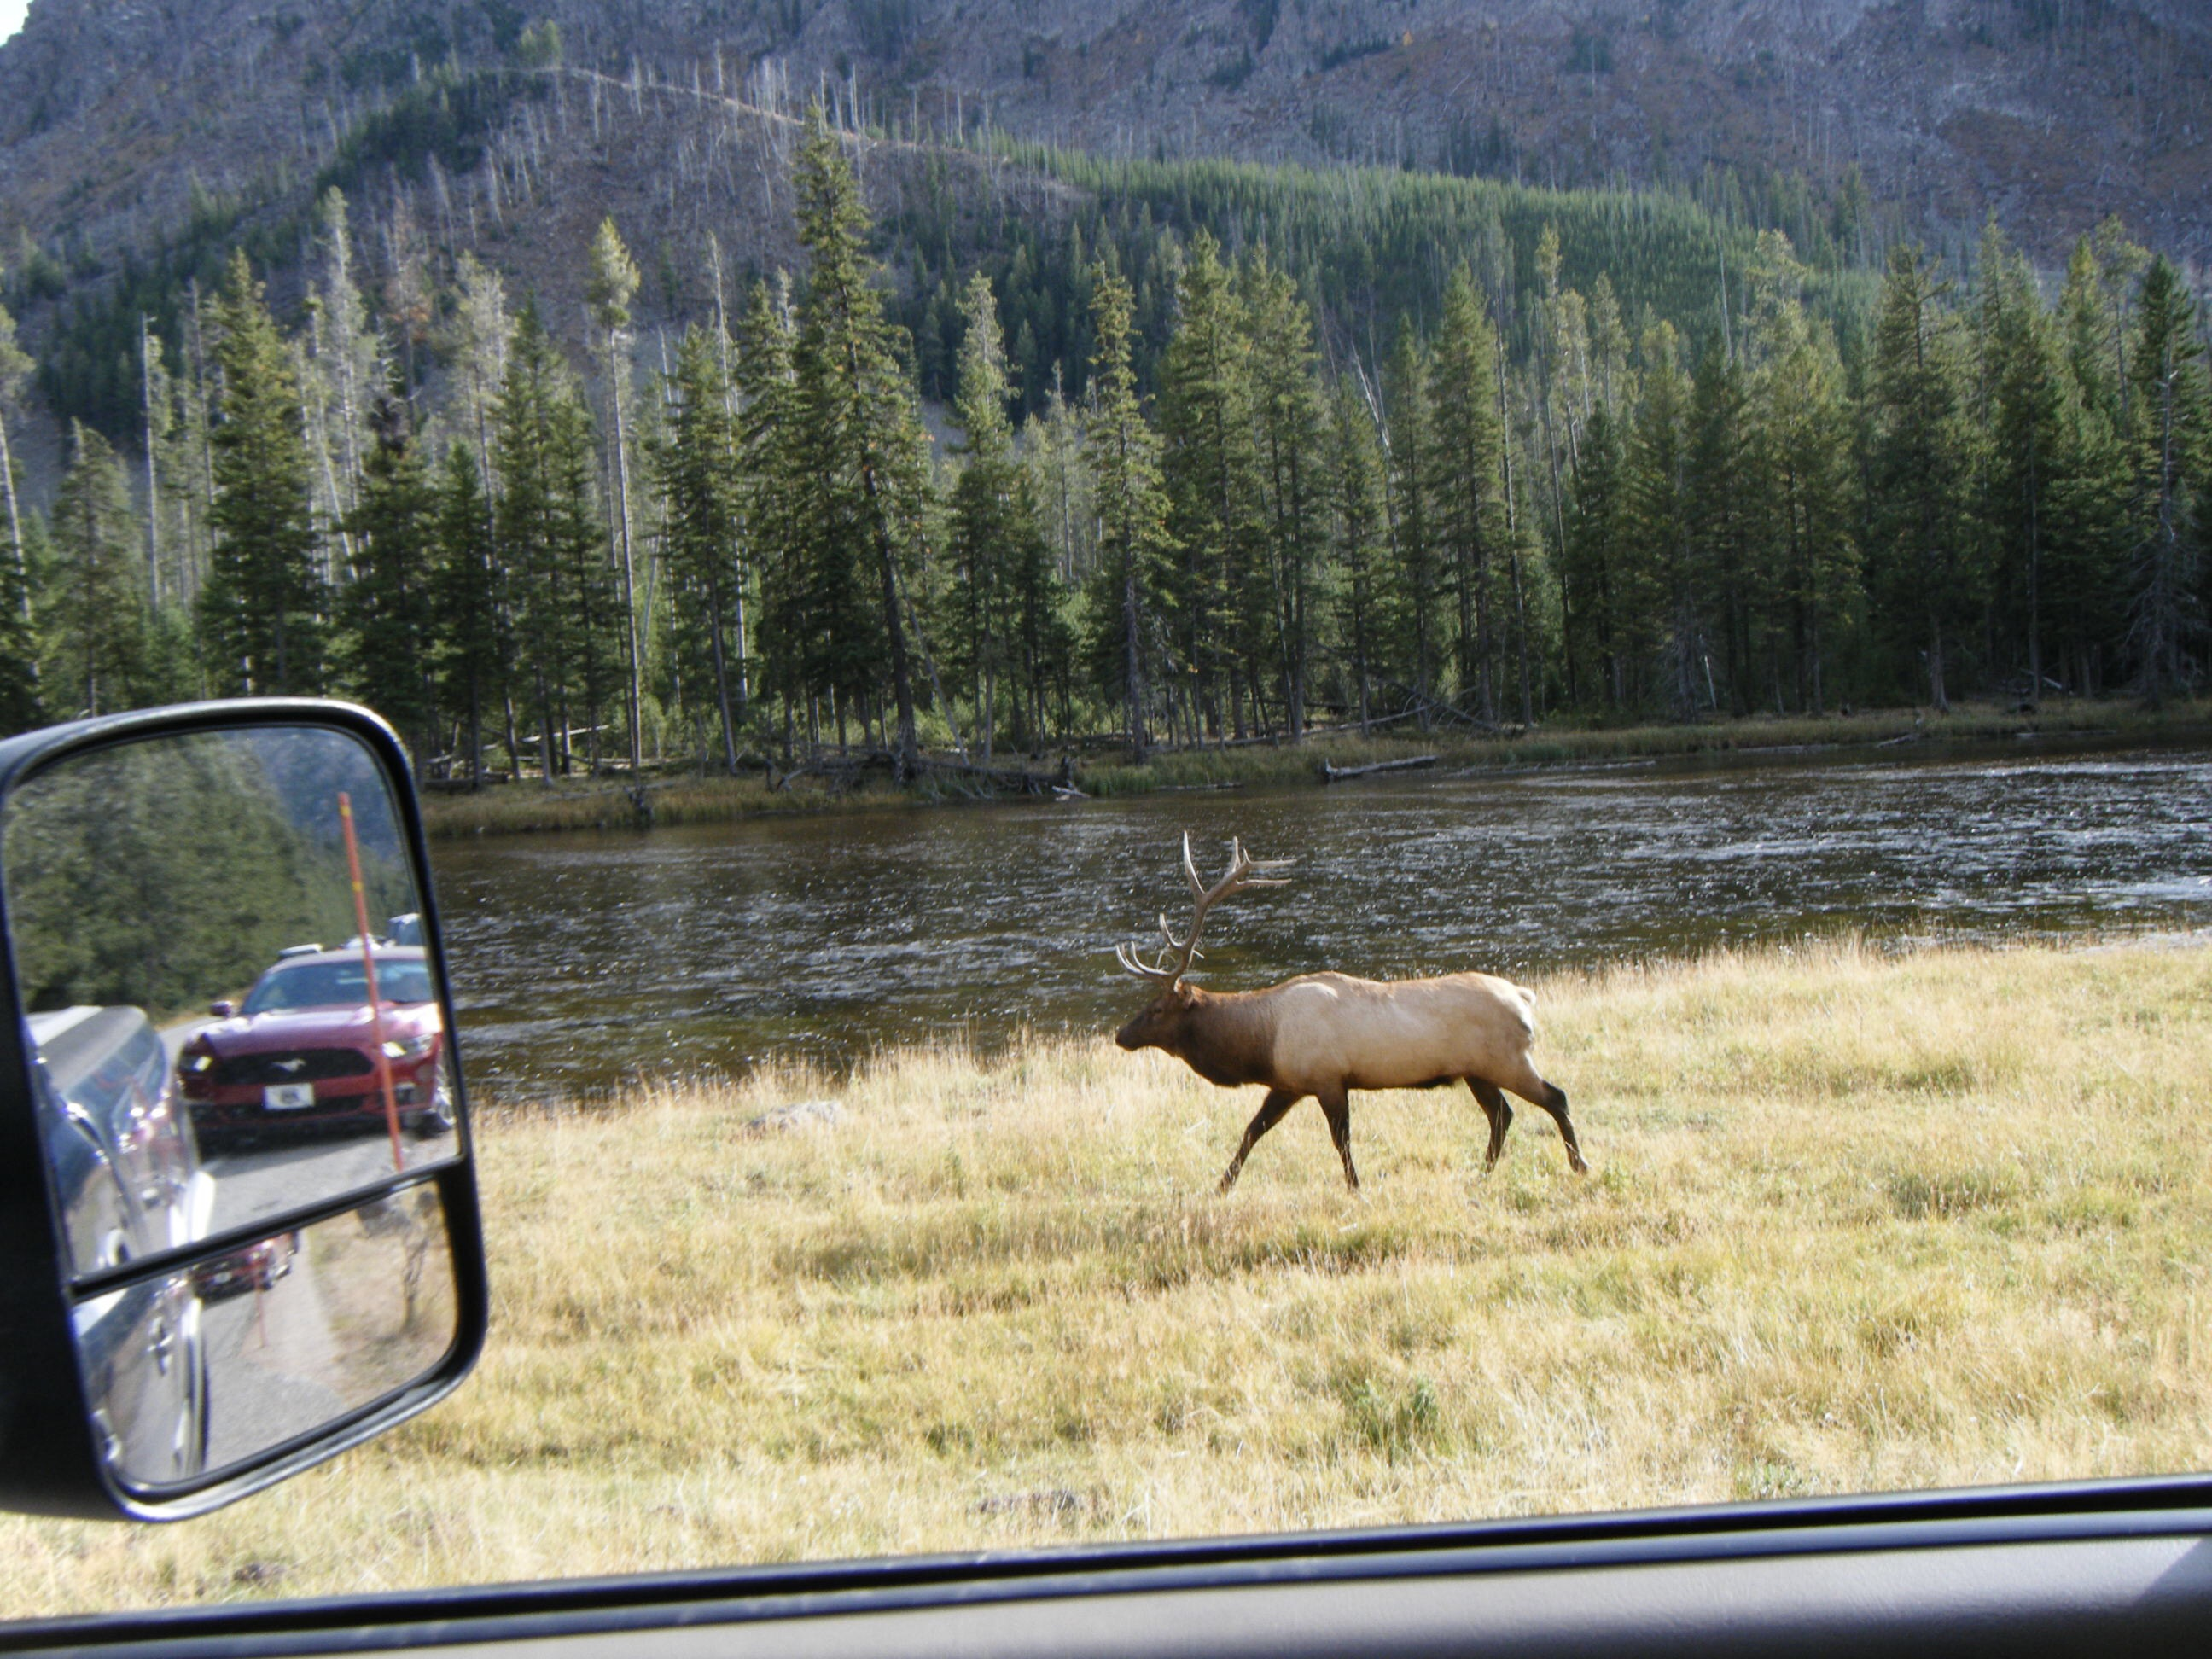 I was on my way back to camp from West Yellowstone.